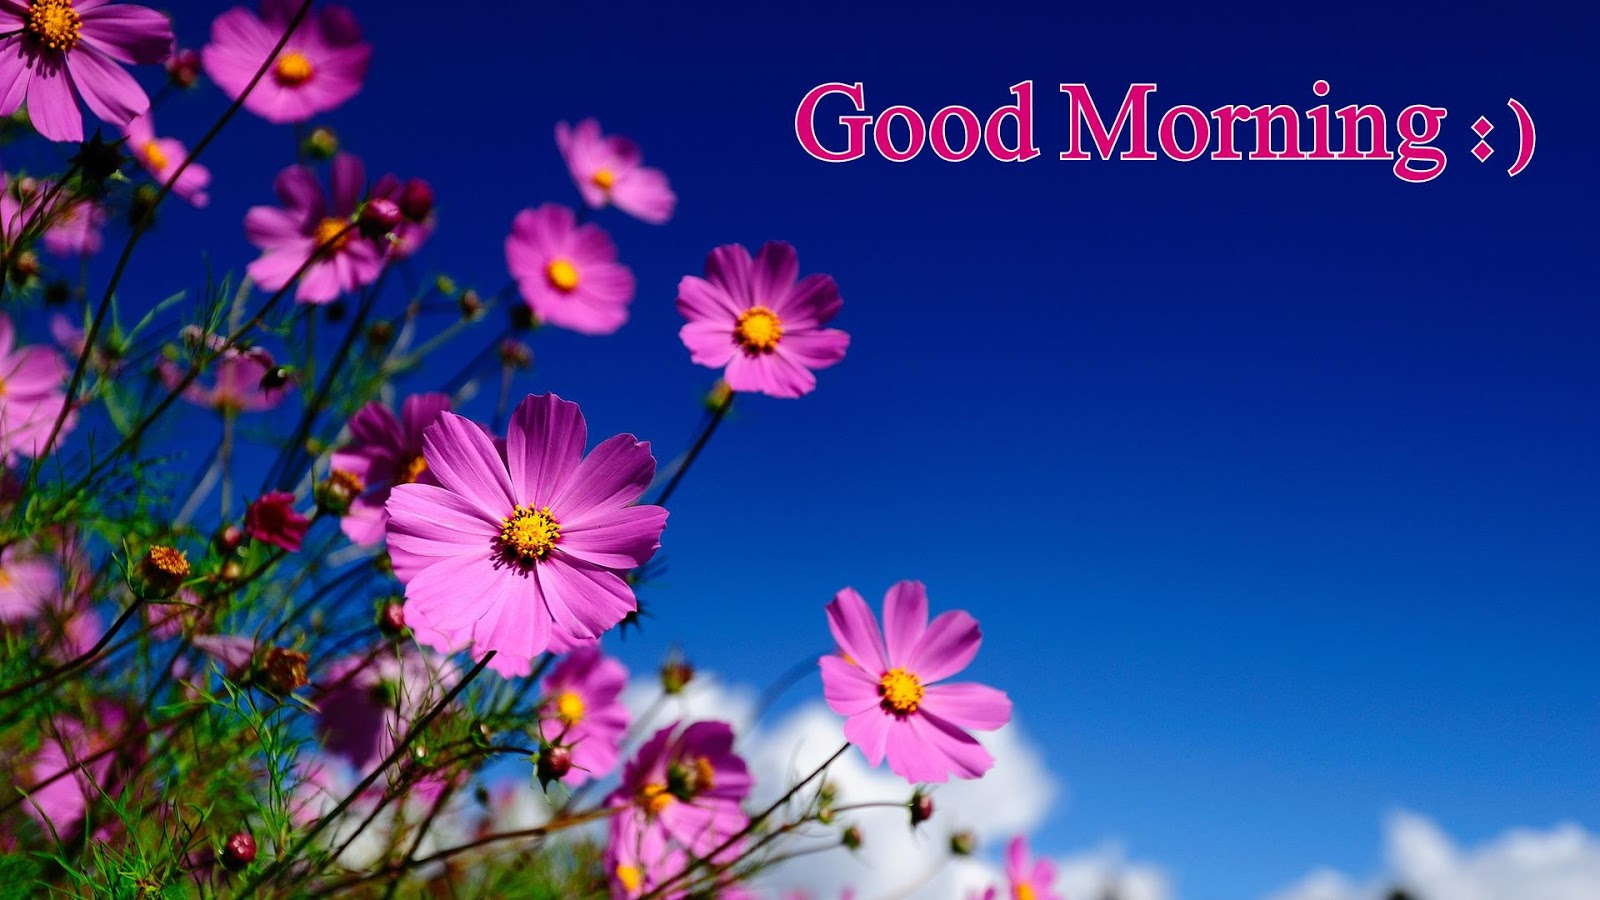 40 Good Morning Friend Have A Nice Day Images Freshmorningquotes